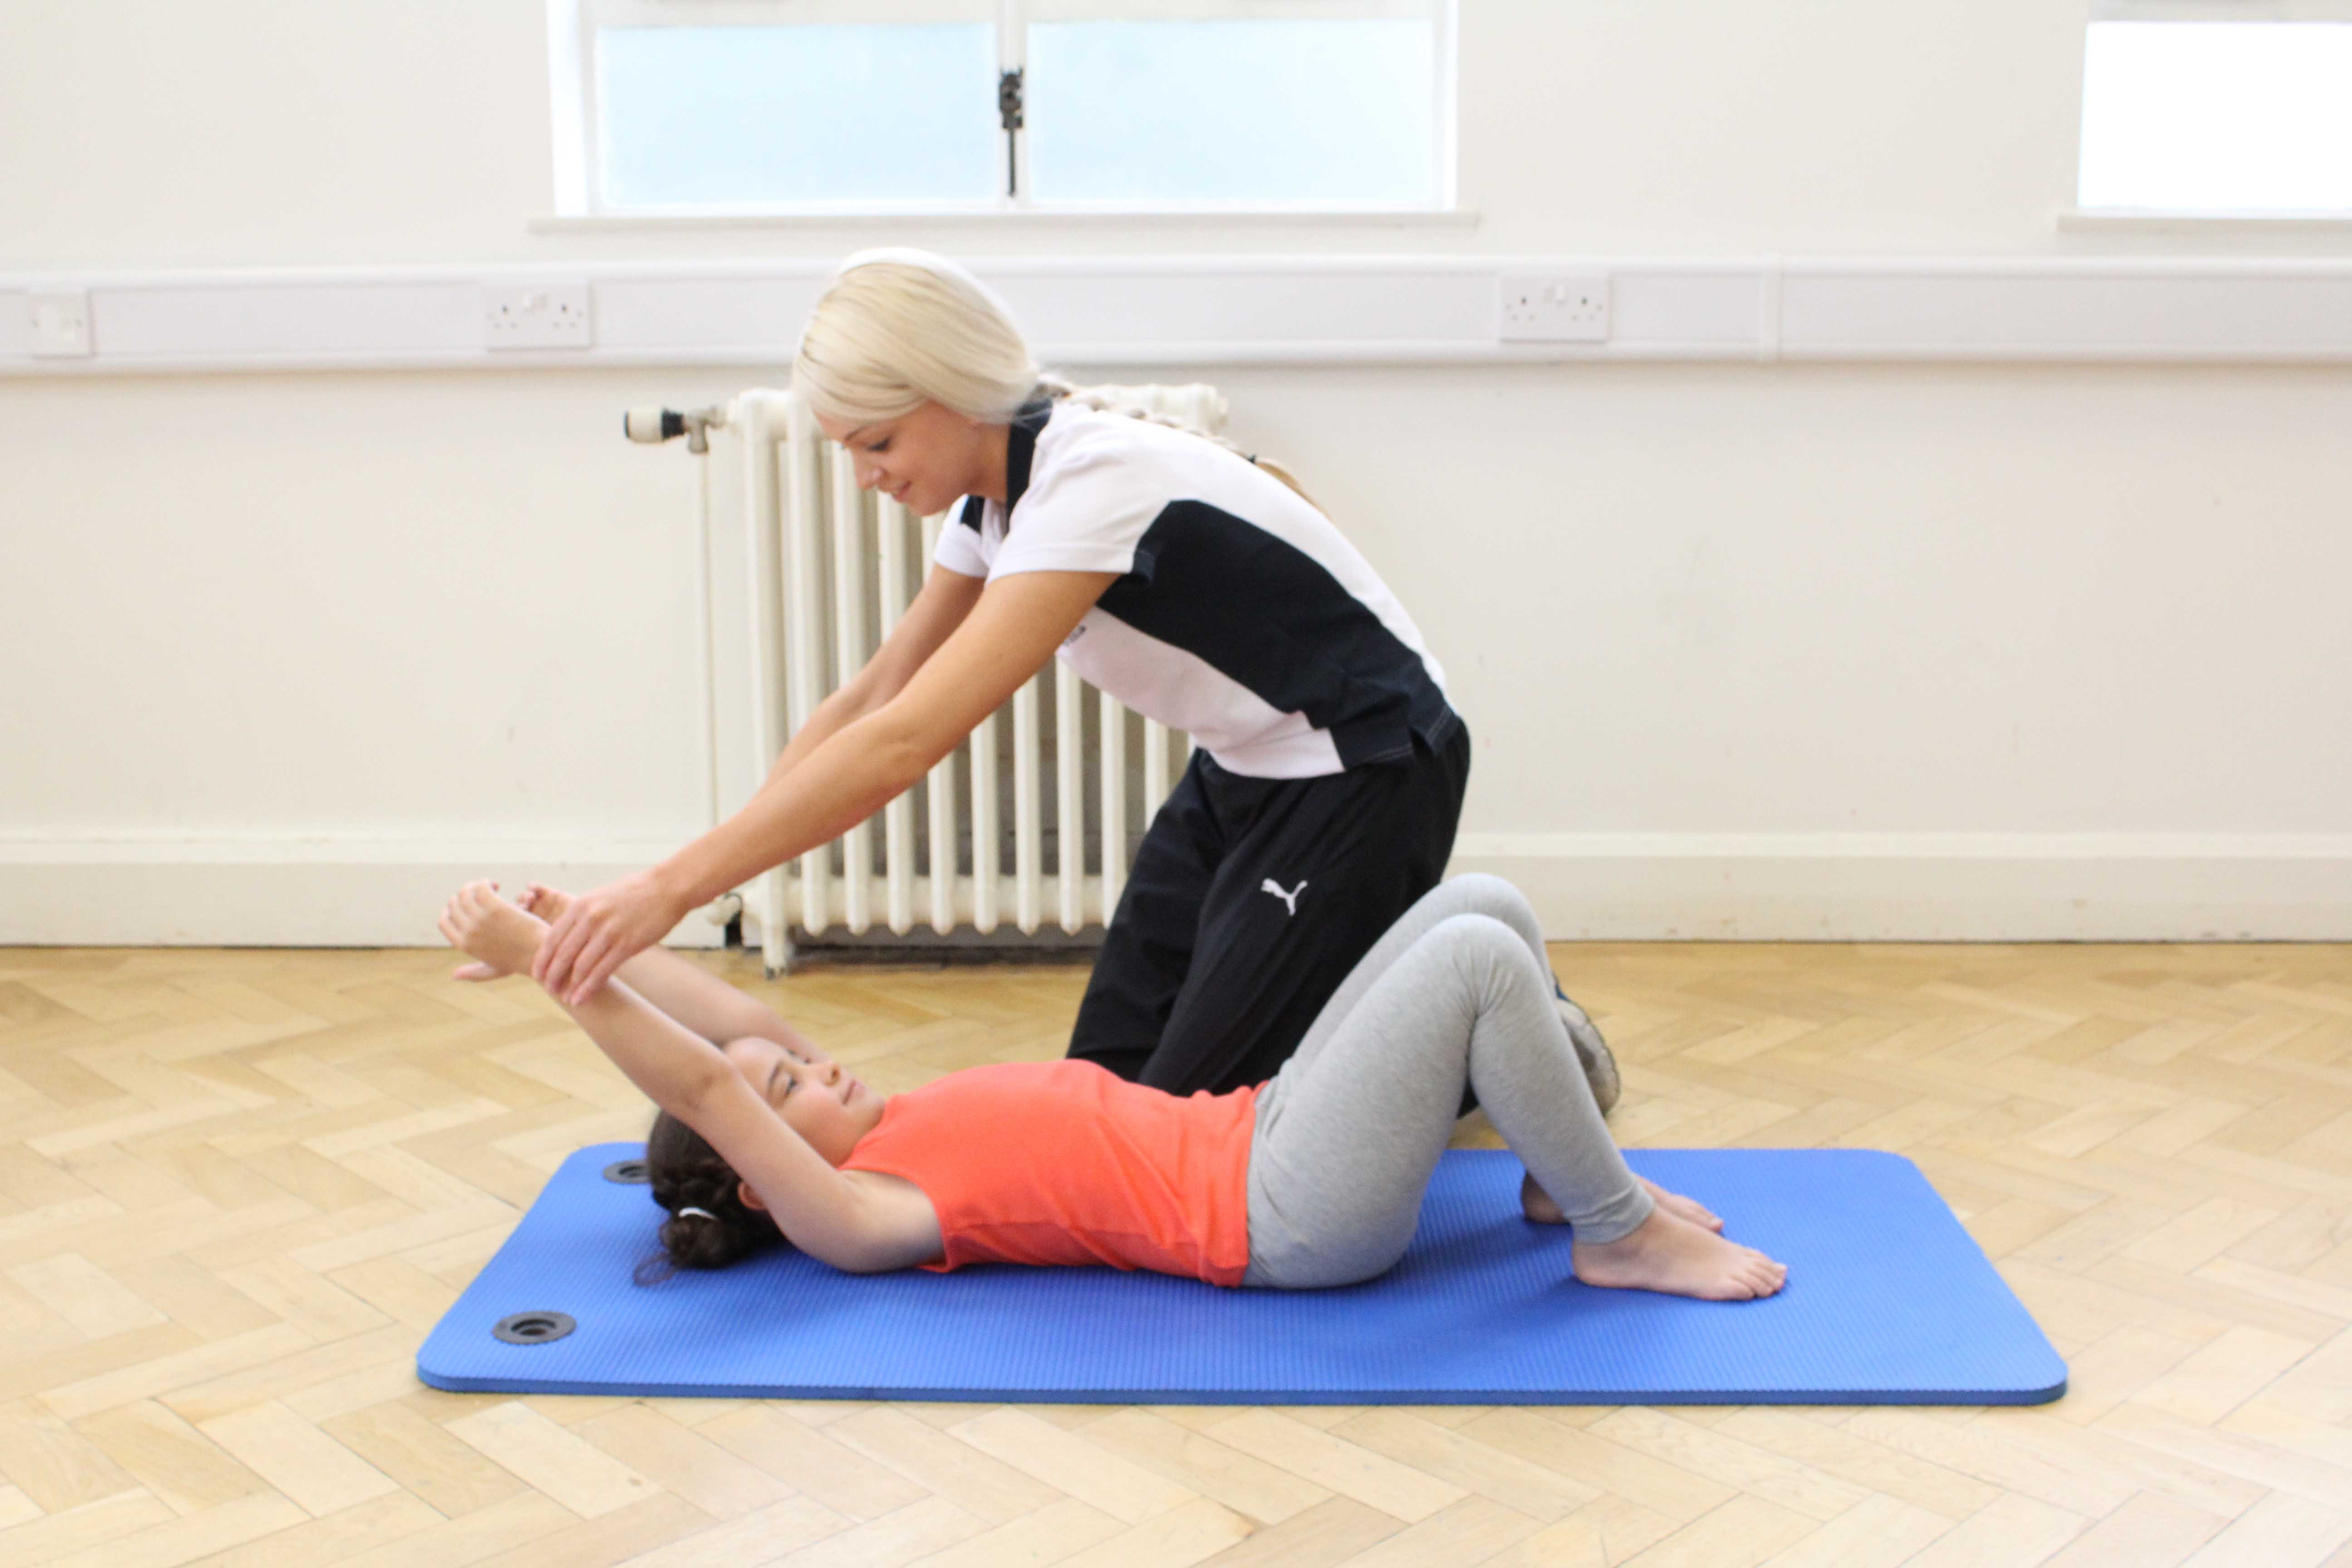 Stretches and exercises to improve exercise tolerance and flexibility